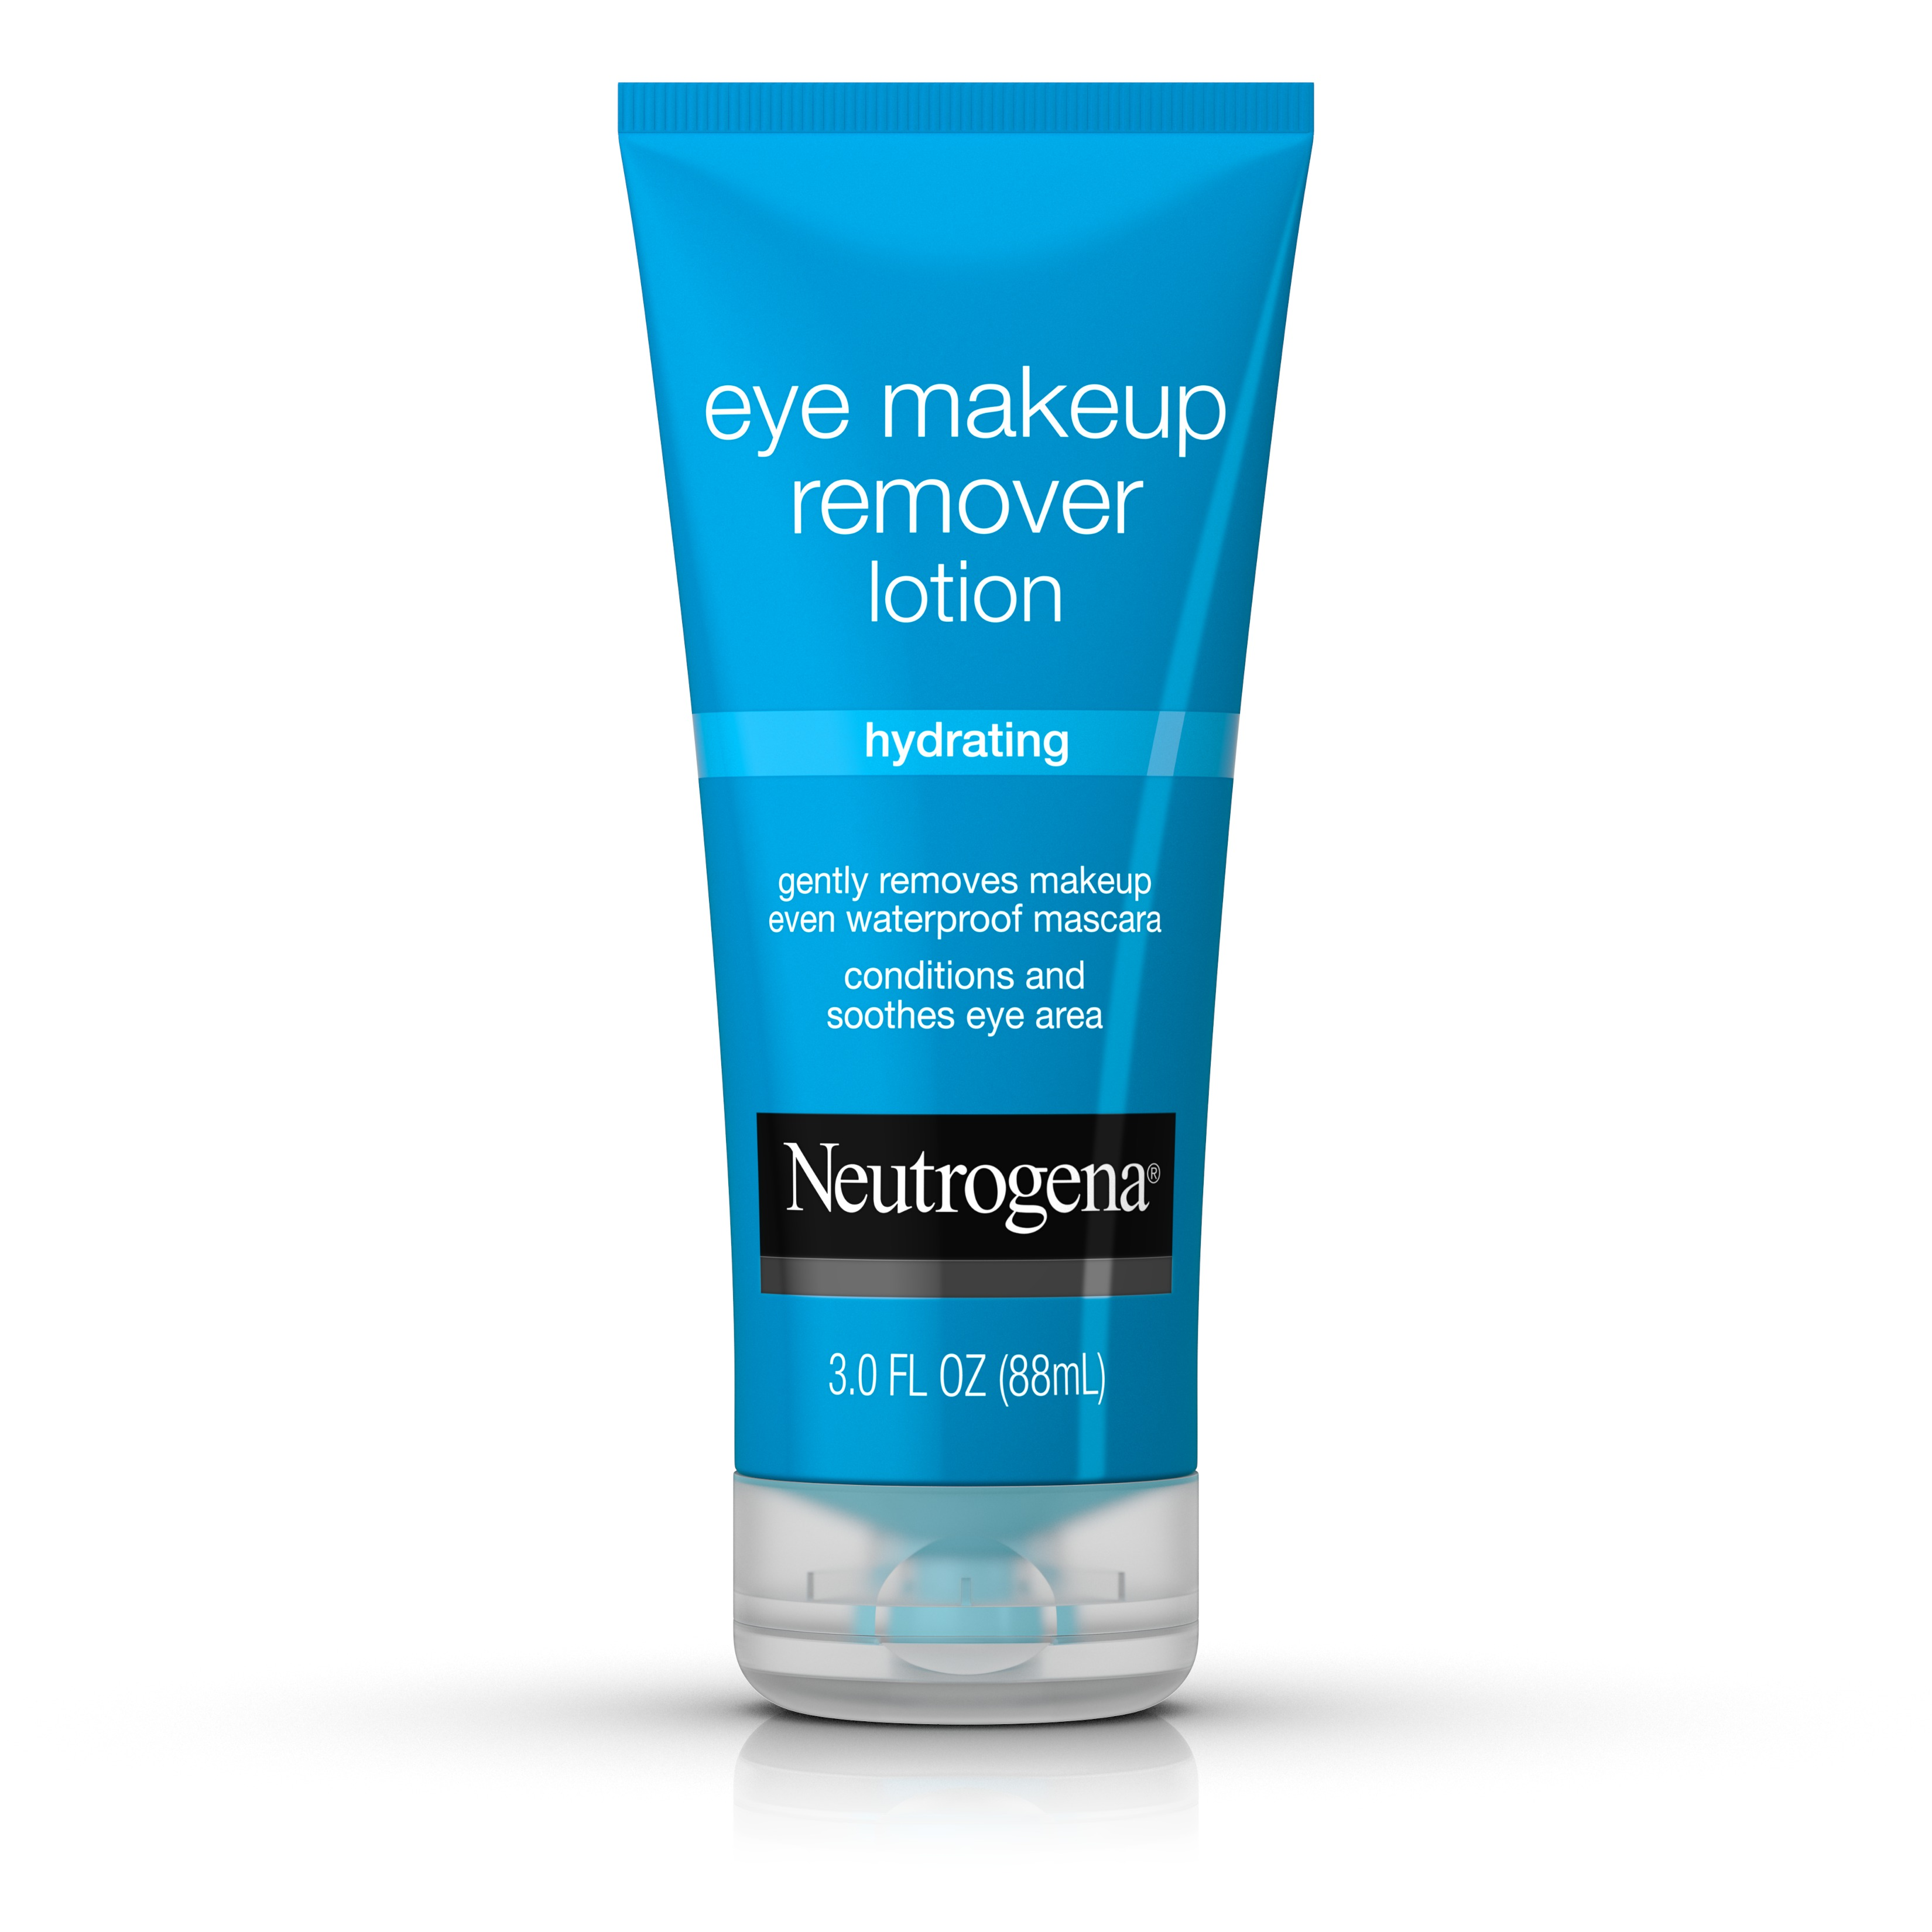 Neutrogena Hydrating Eye Makeup Remover Lotion, 3 Oz.